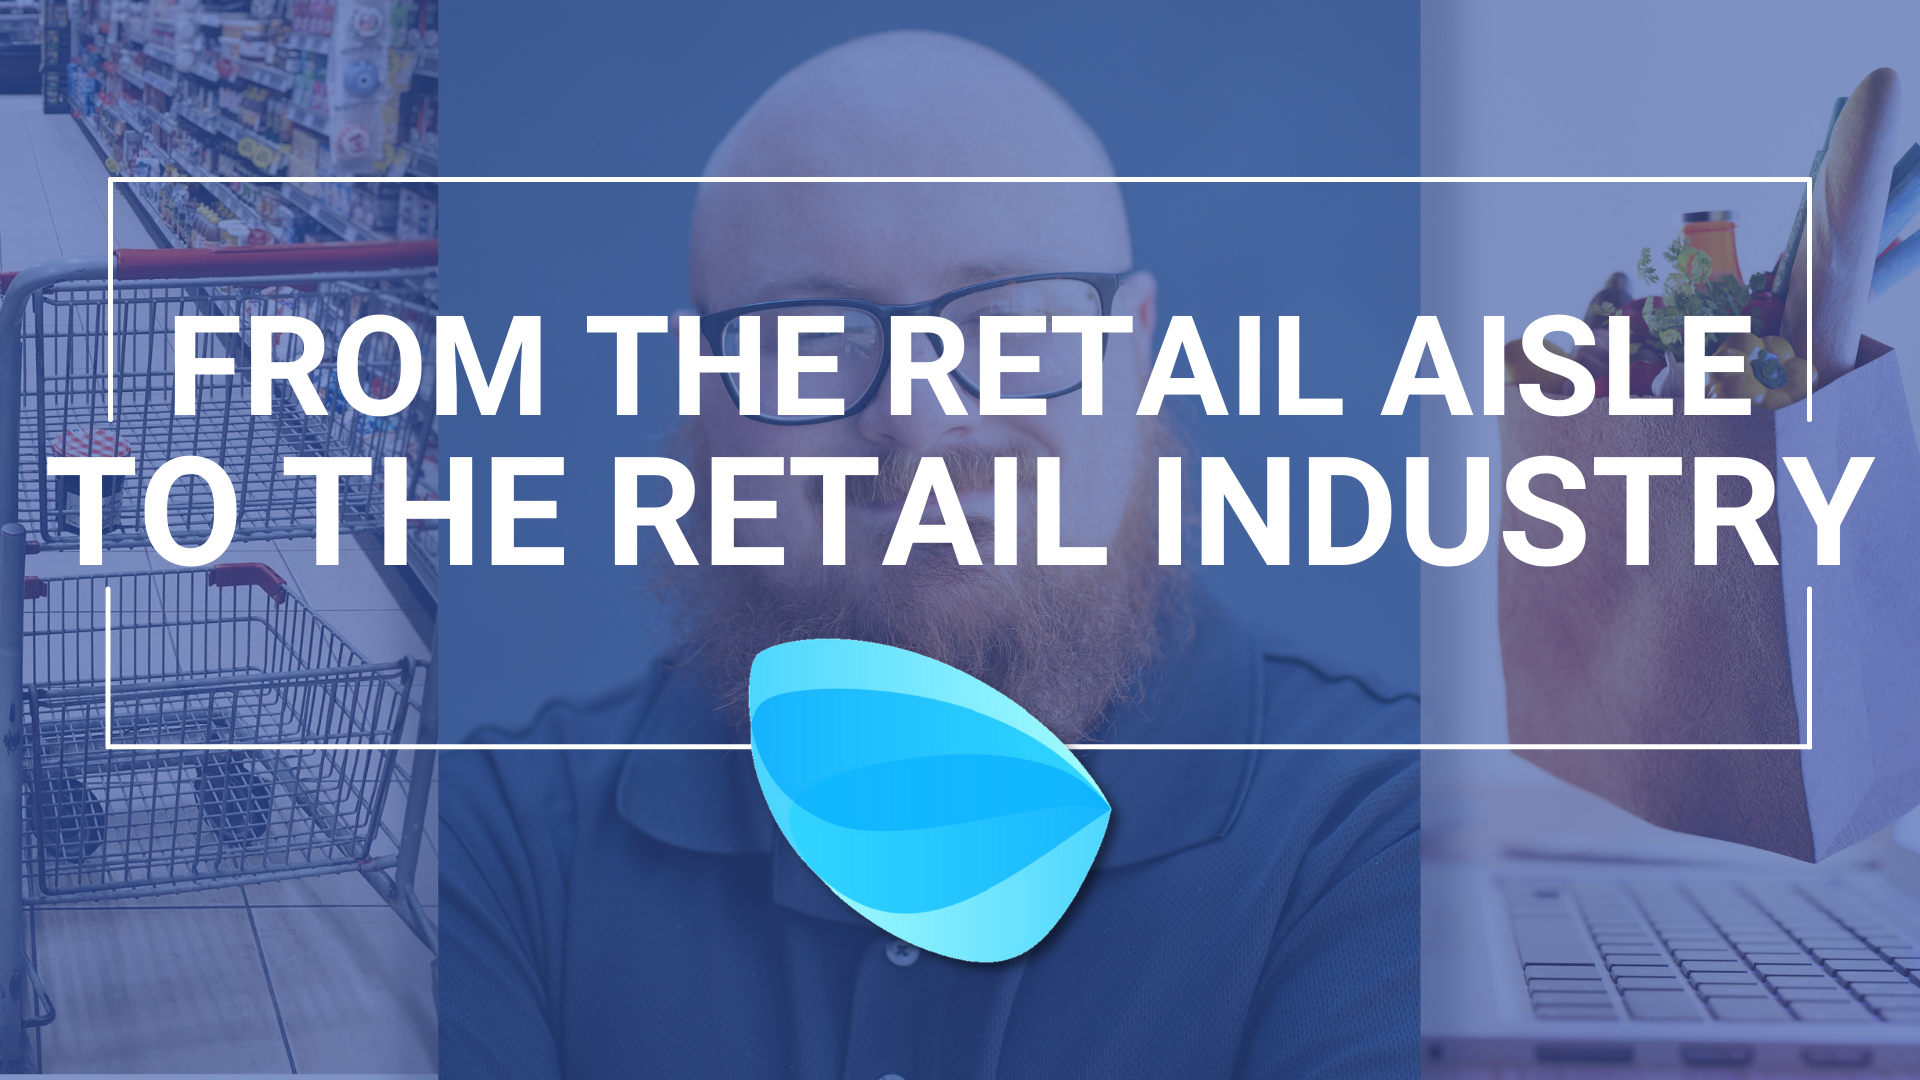 From the Retail Aisle to the Retail Industry